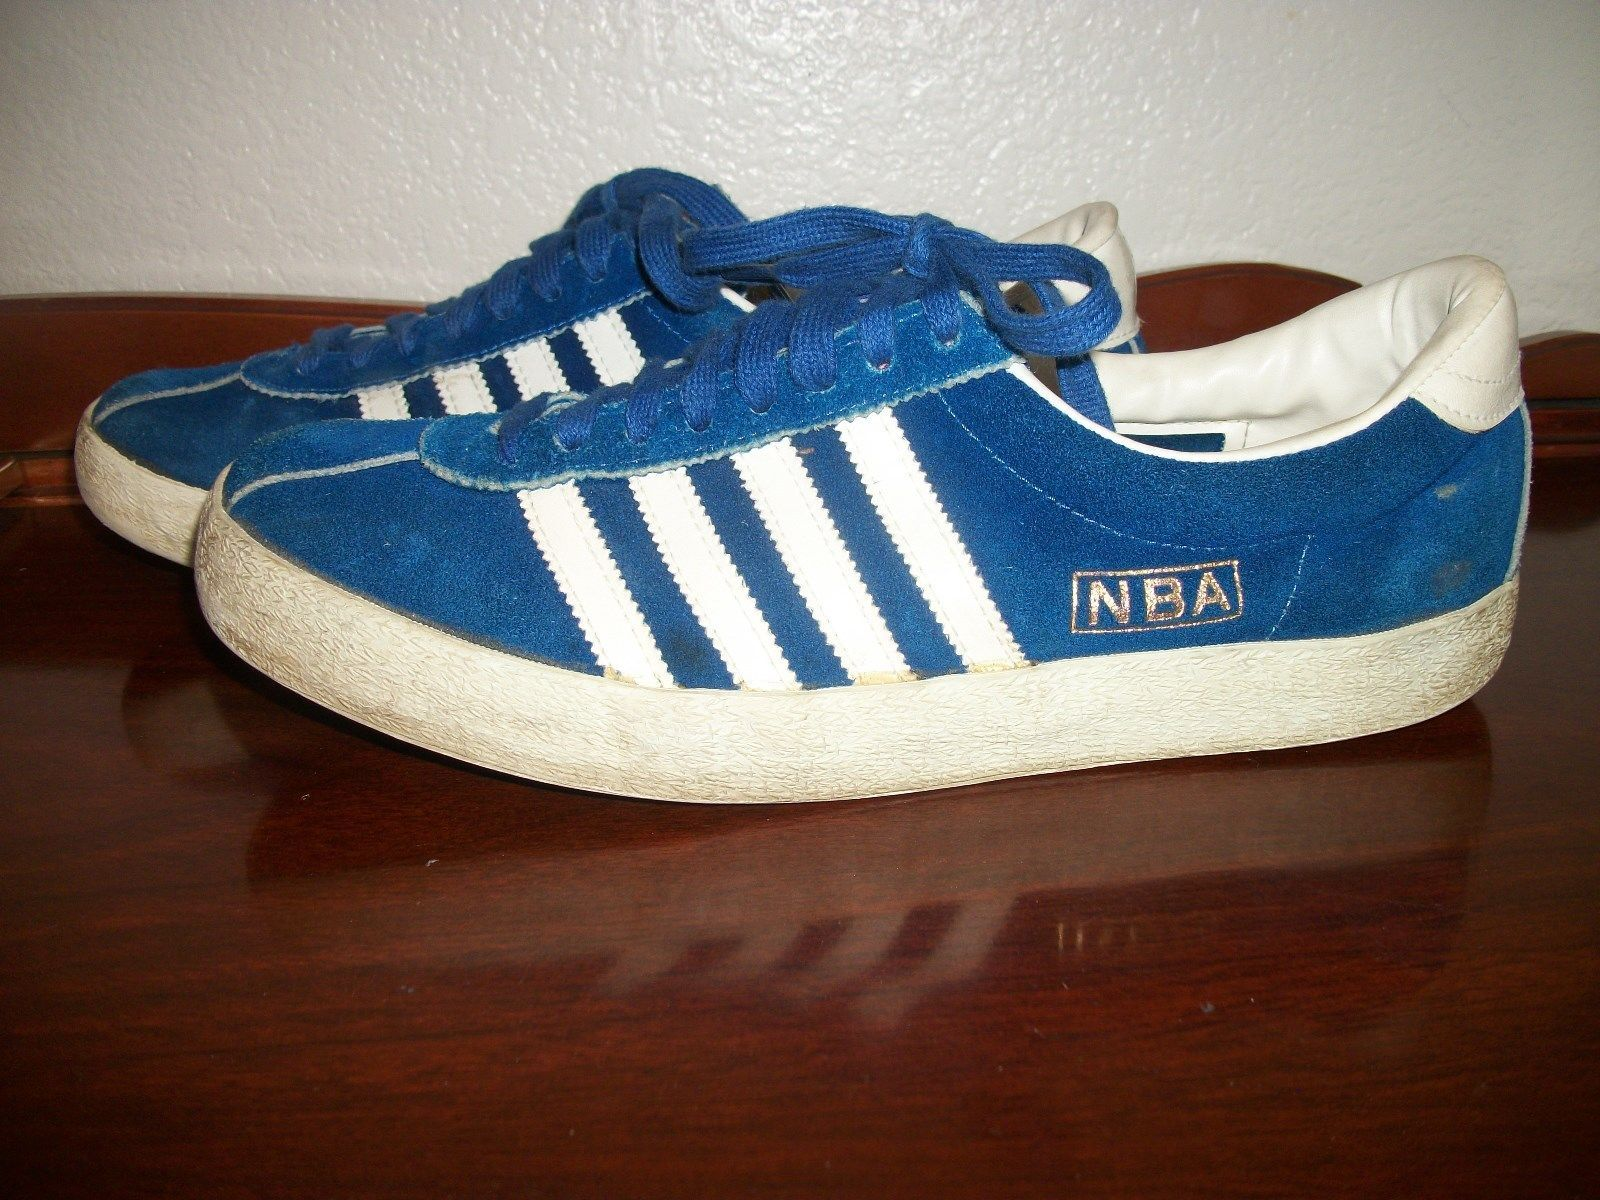 brand new bbe2d 4e7b8 vintage nba sneaker sold at Kinney shoes